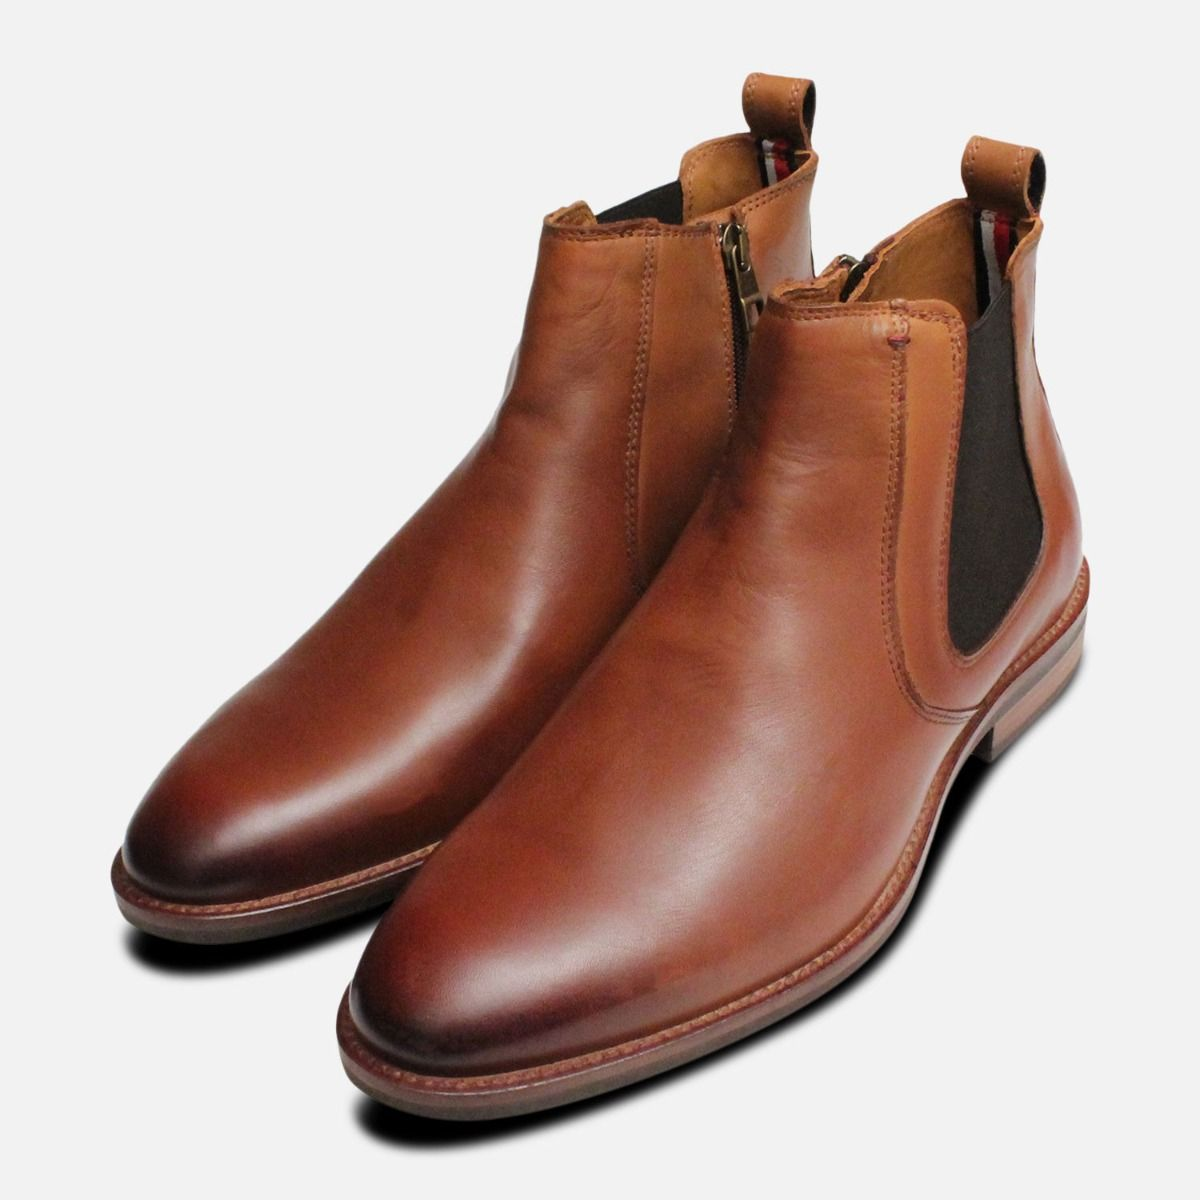 low cost 06a5a 81d83 Tommy Hilfiger Chelsea Boots Light Brown Daytona